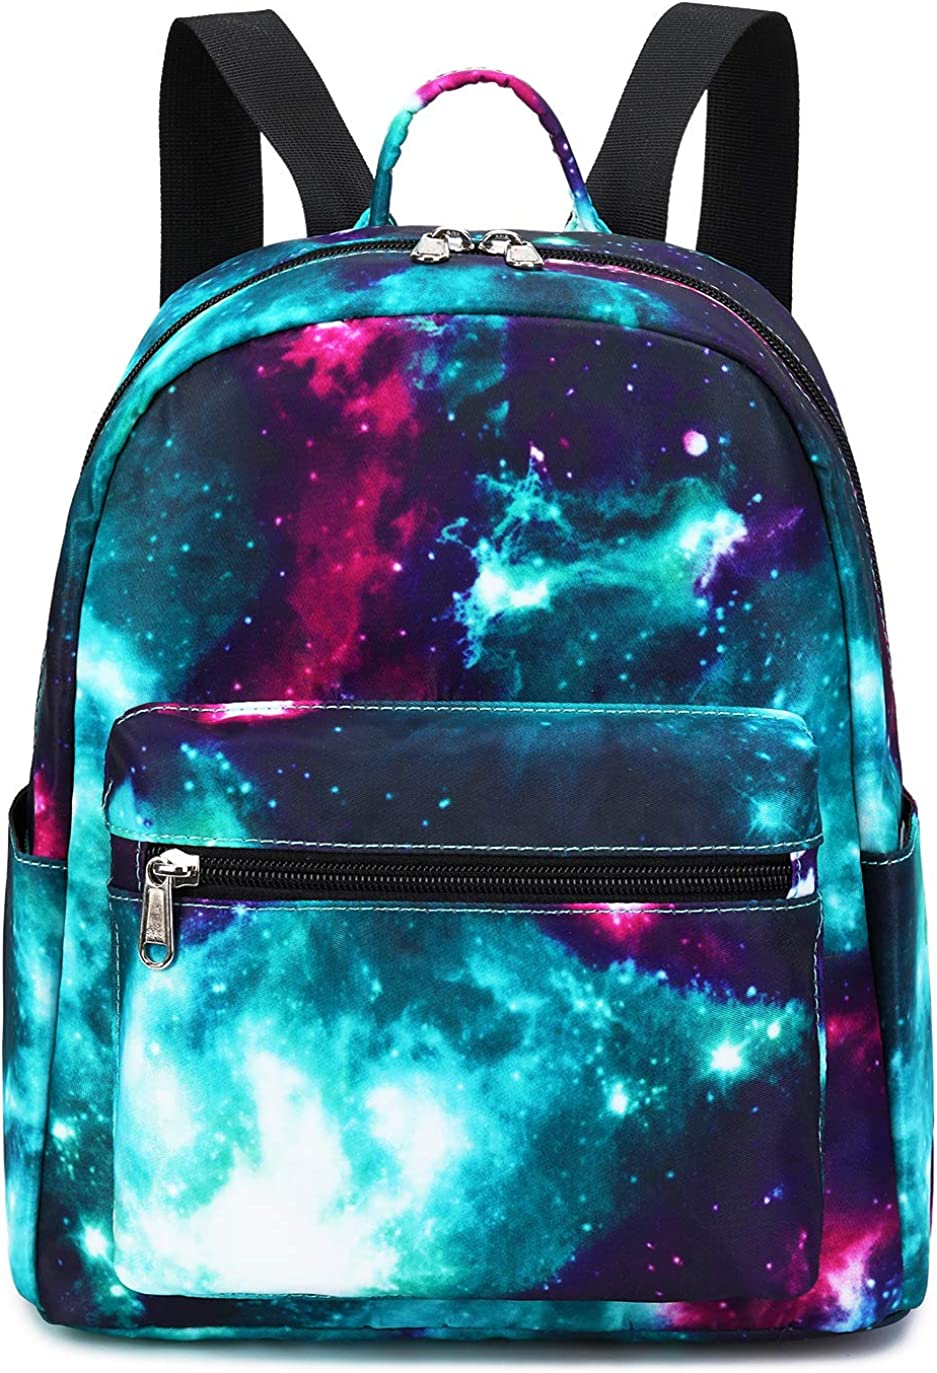 Mini Backpack Girls Water-resistant Small Backpack Purse Shoulder Bag for Womens Adult Kids School Travel